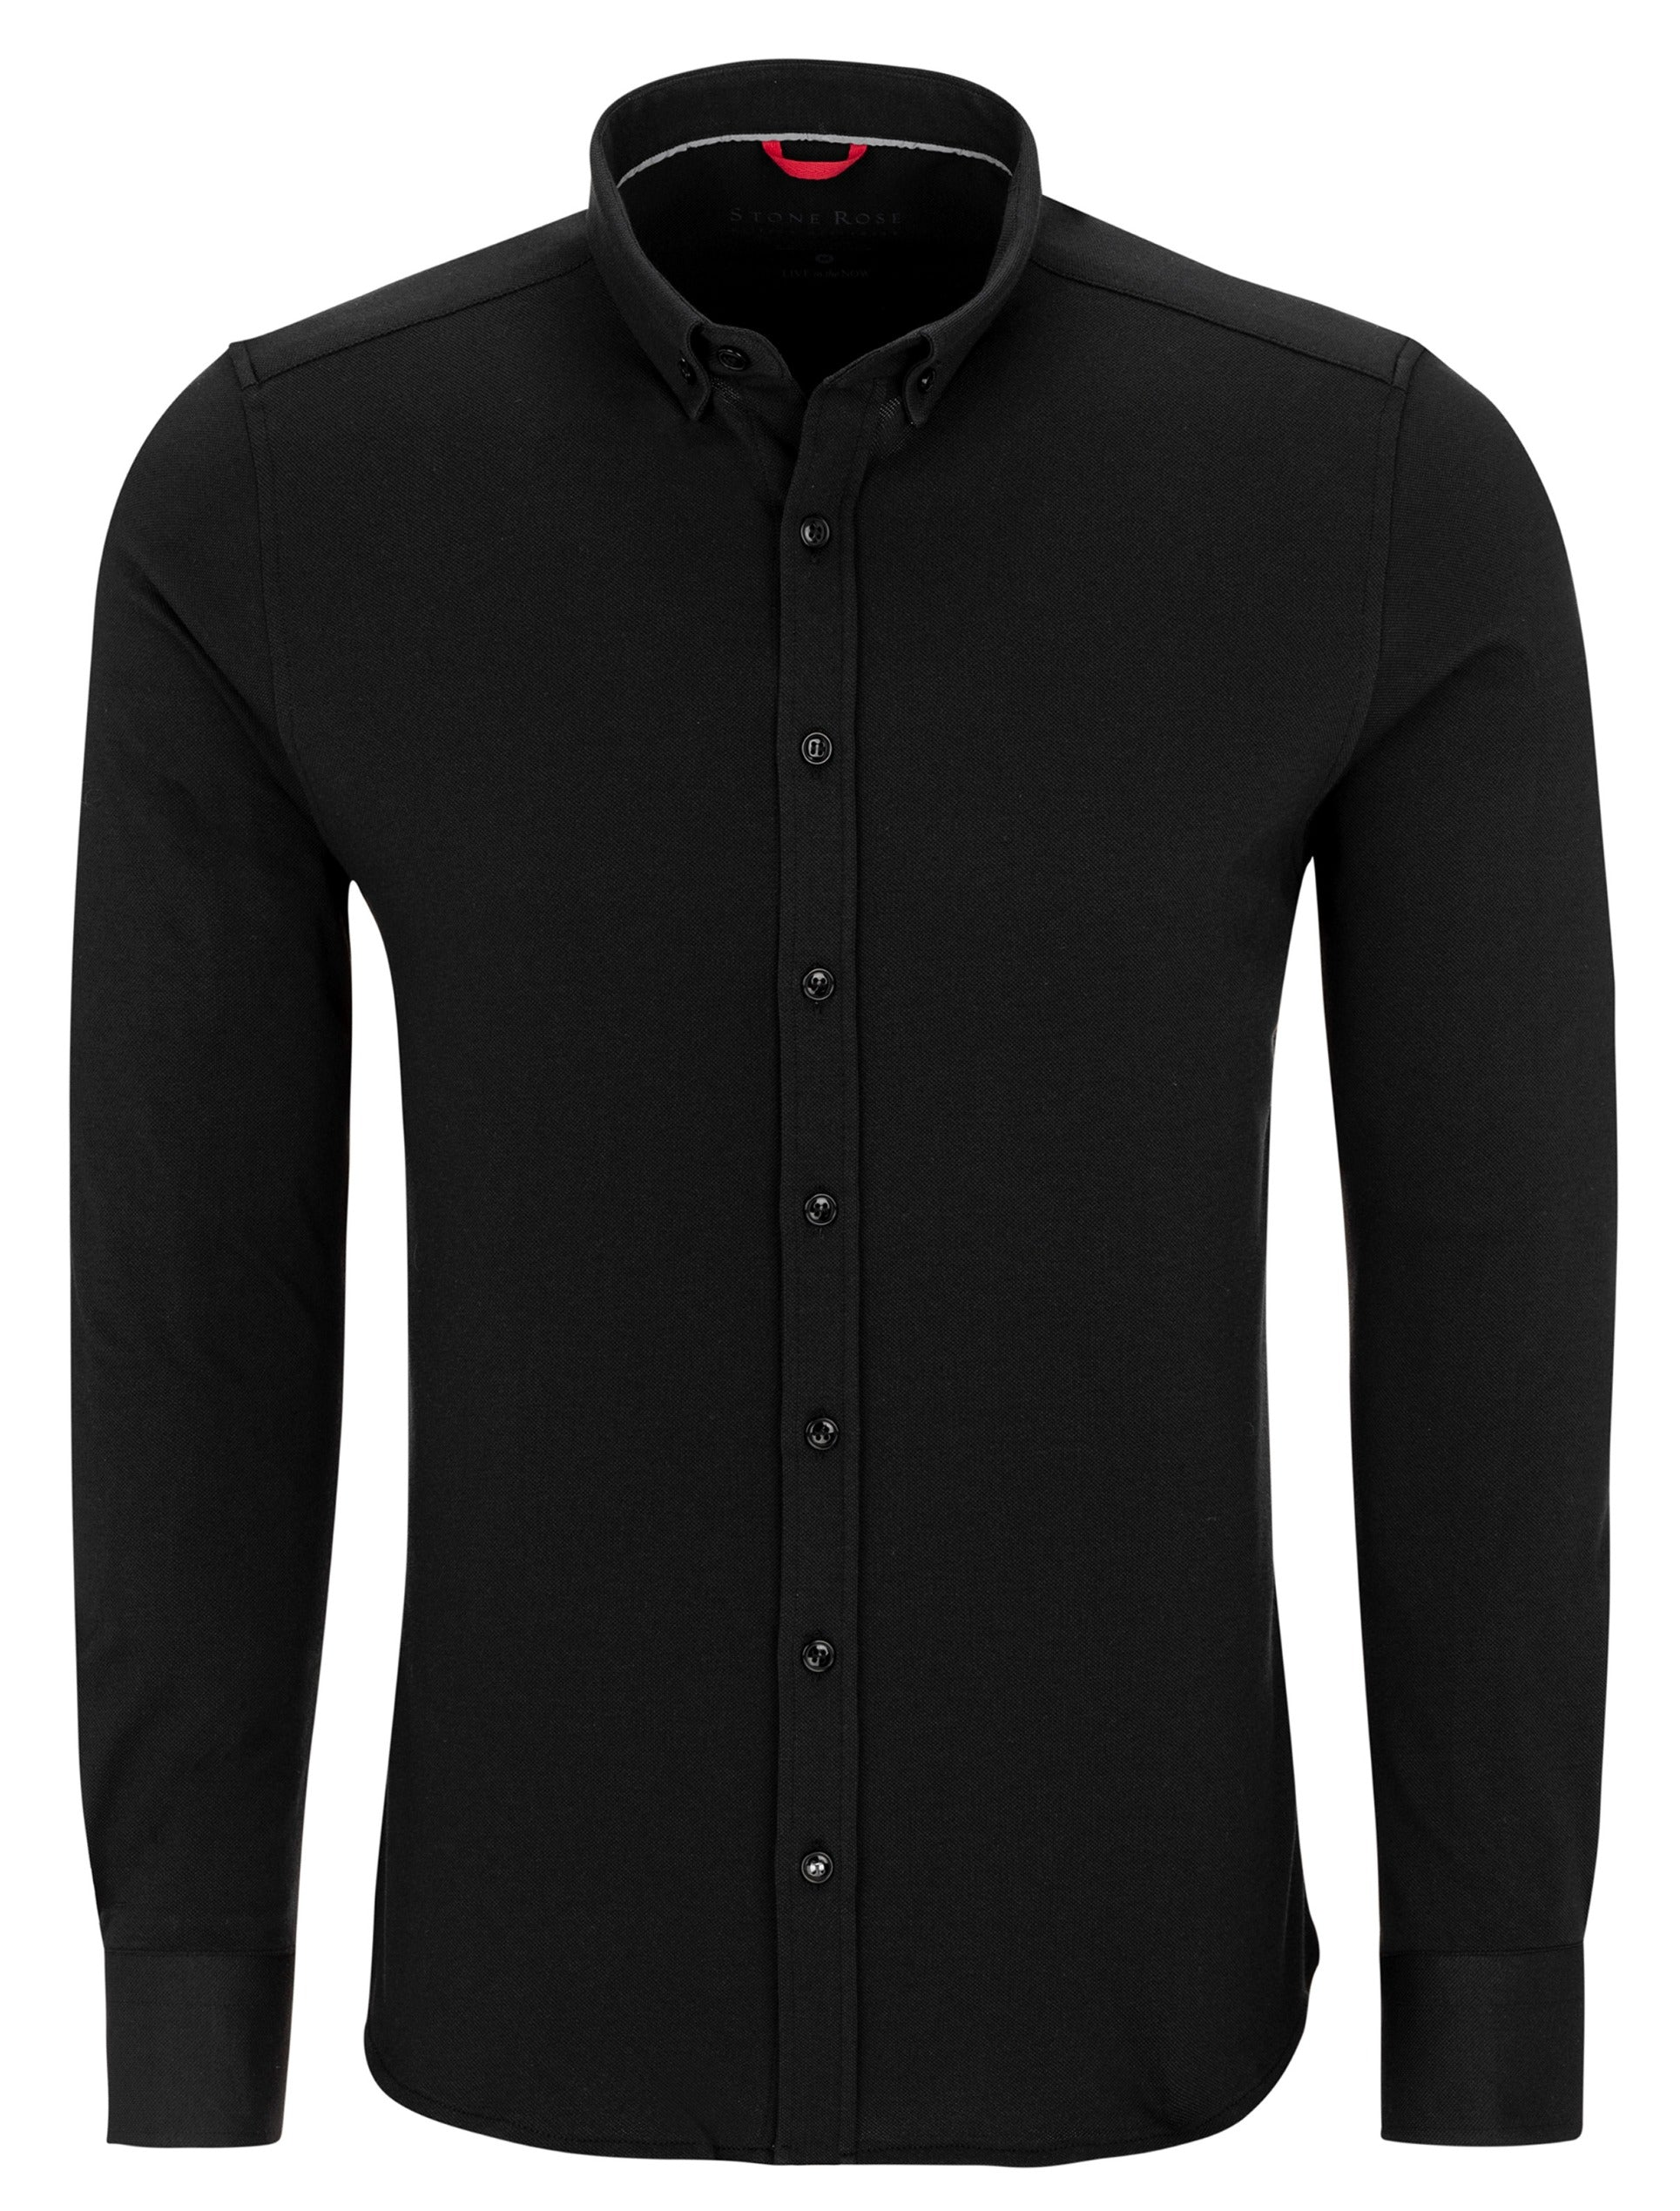 Black Performance Knit Long Sleeve Shirt